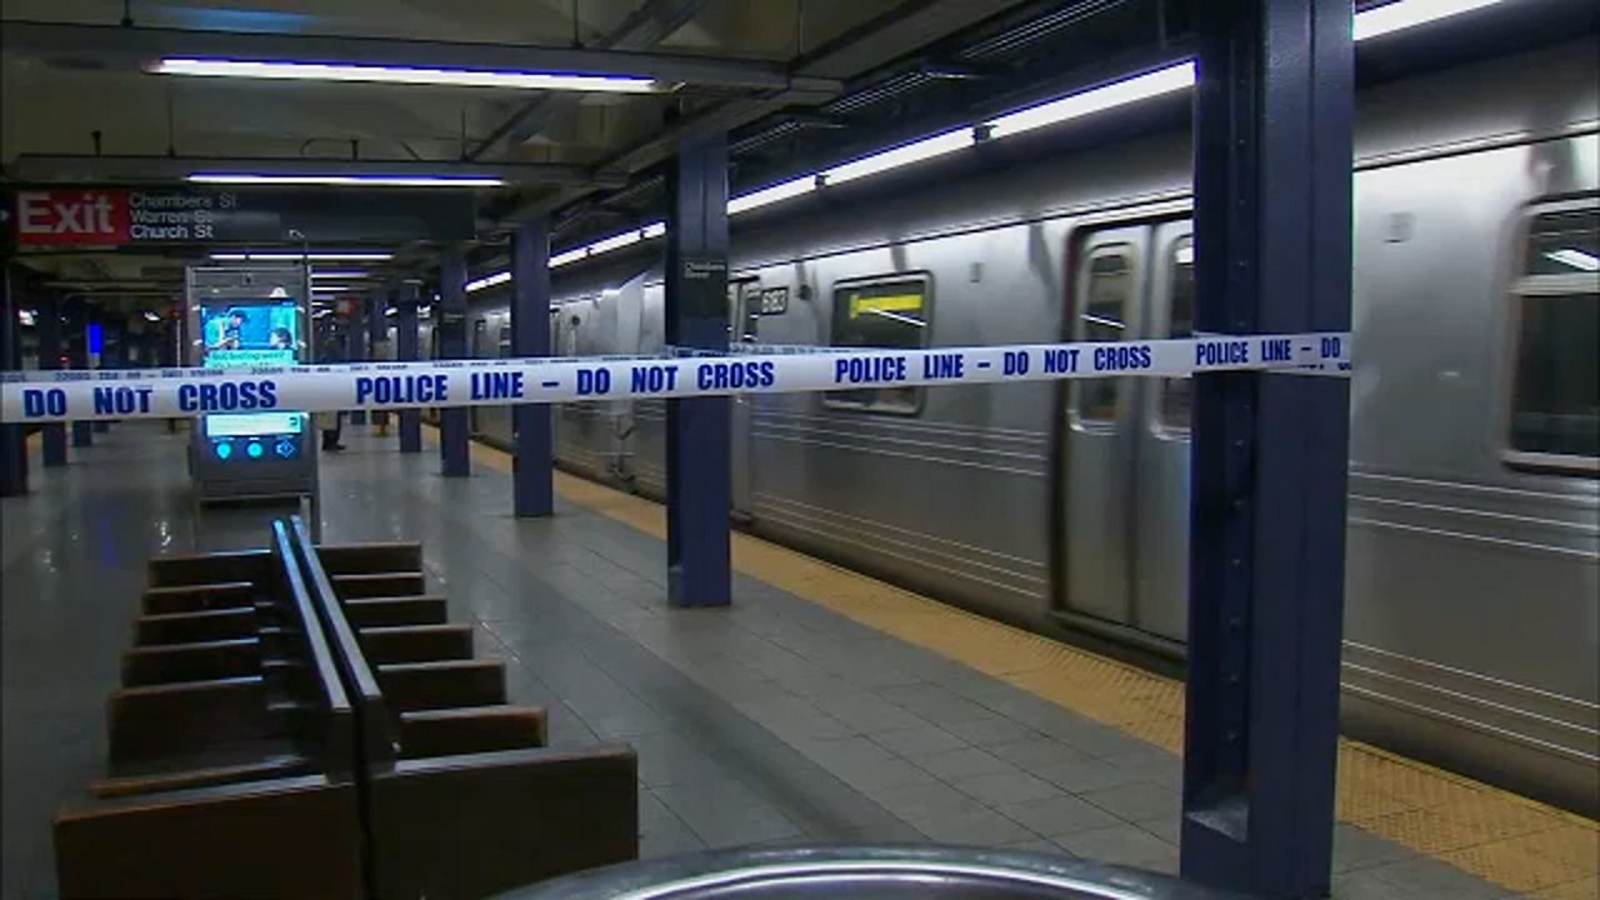 Man says attackers yelled anti-gay statements in TriBeCa subway assault